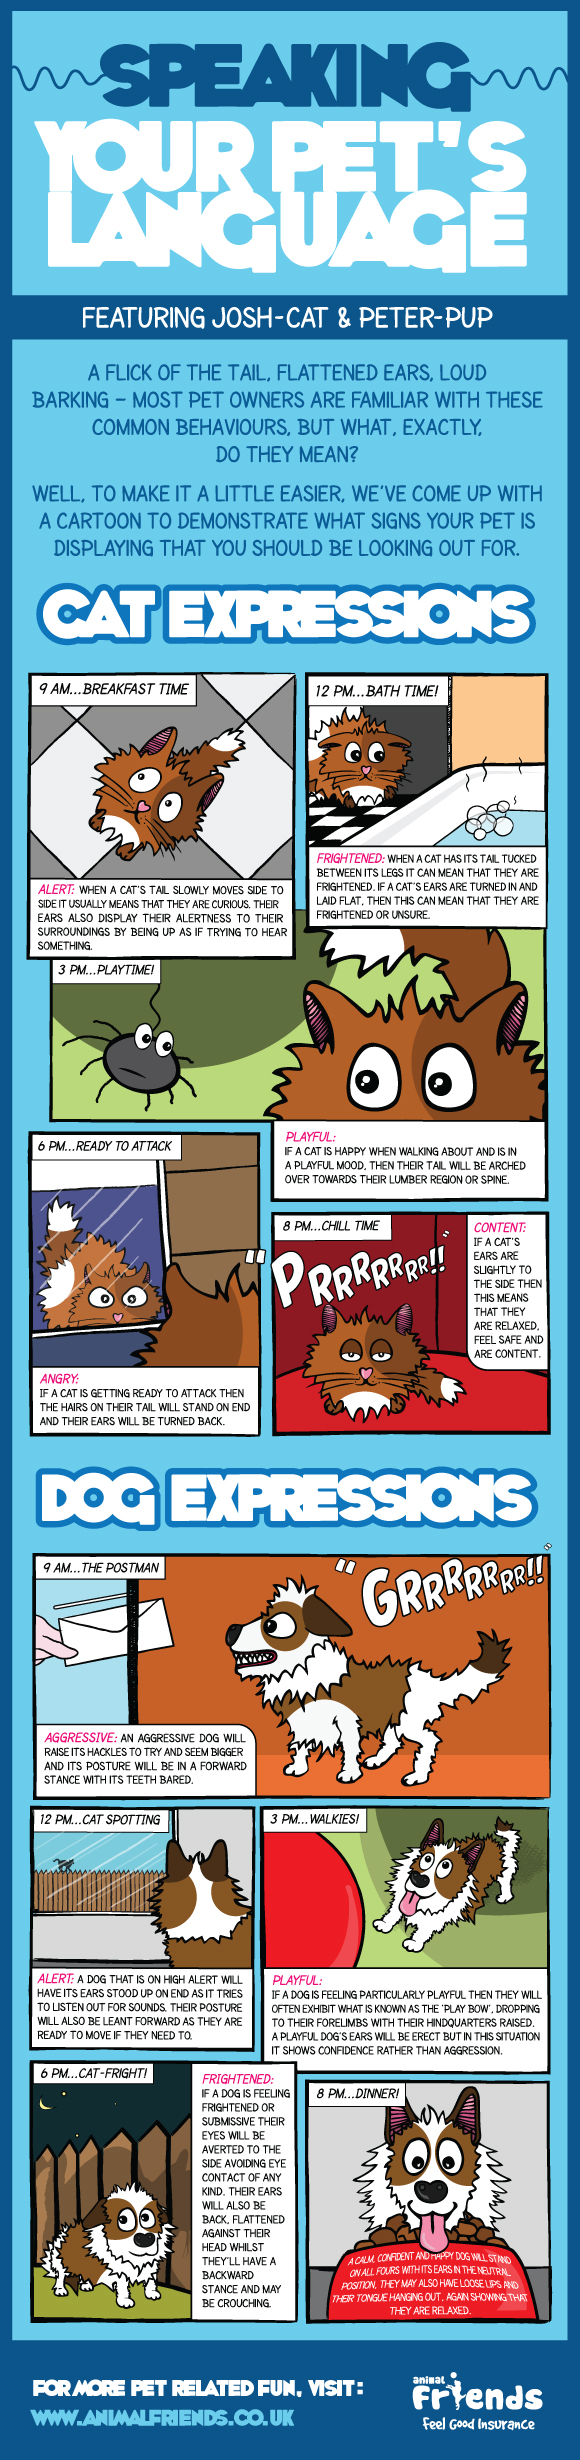 Speak Your Pets Infographic